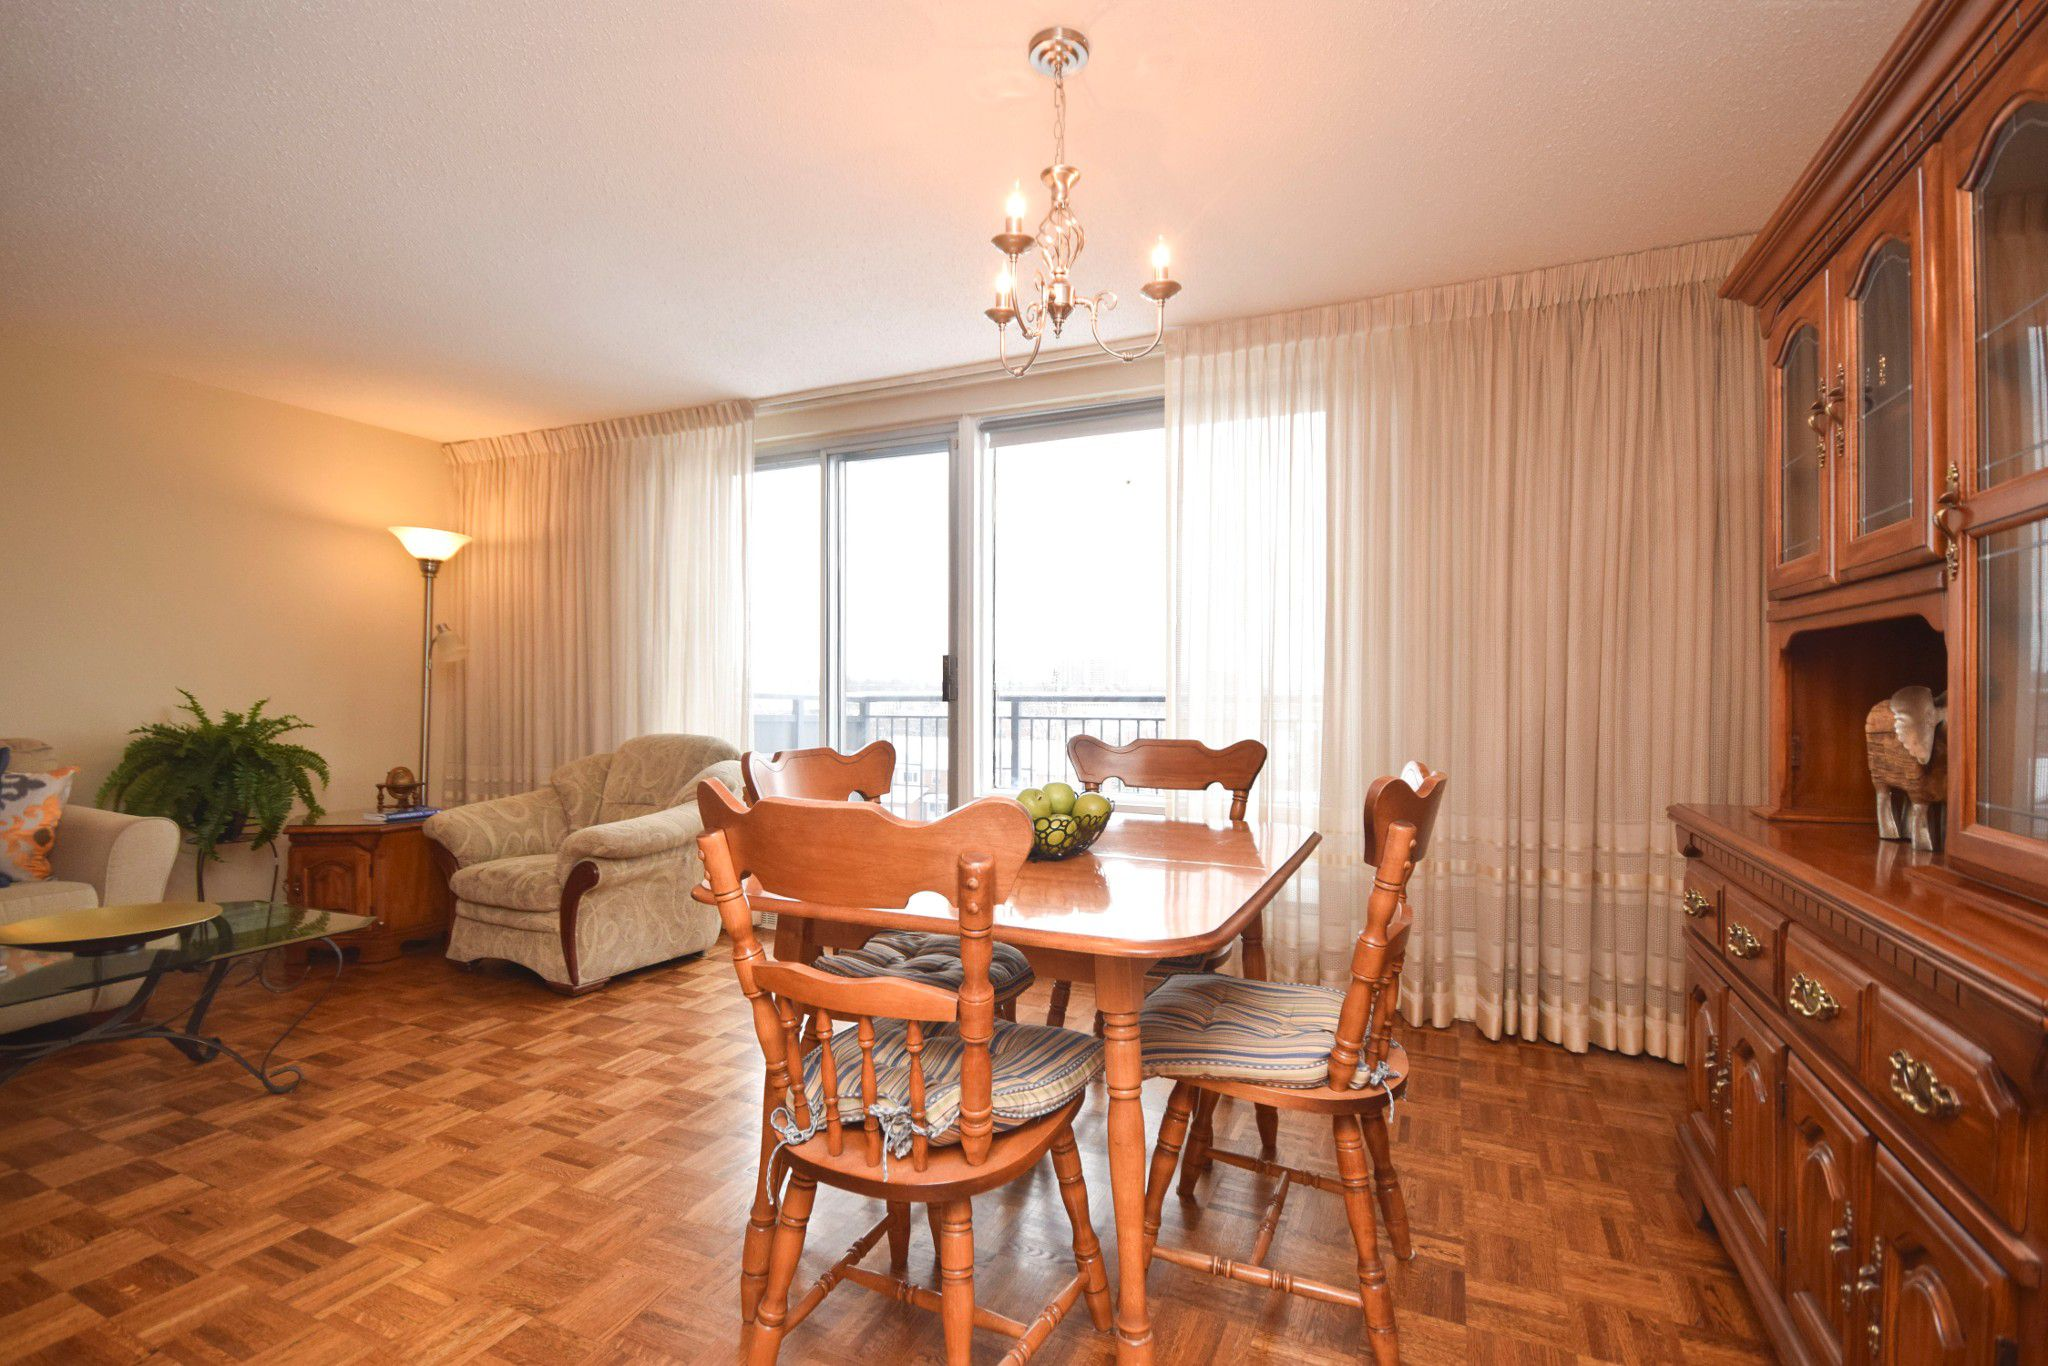 Photo 21: Photos: 515 1465 BASELINE Road in Ottawa: Copeland Park House for sale : MLS®# 1133550